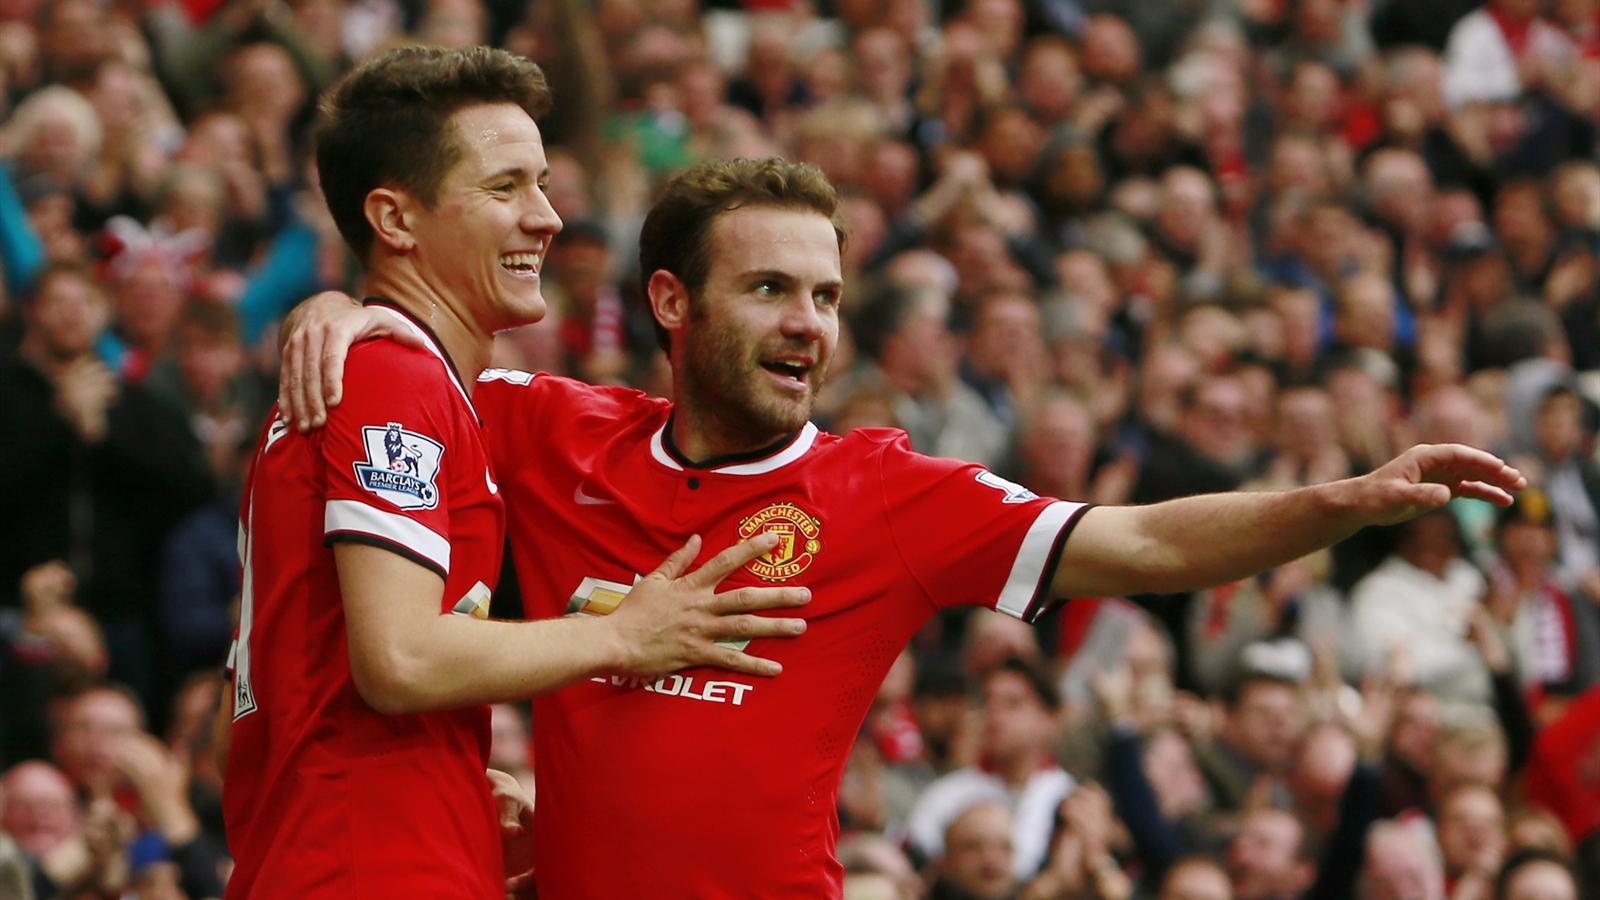 Ander Herrera celebrates with Juan Mata after scoring for Manchester United